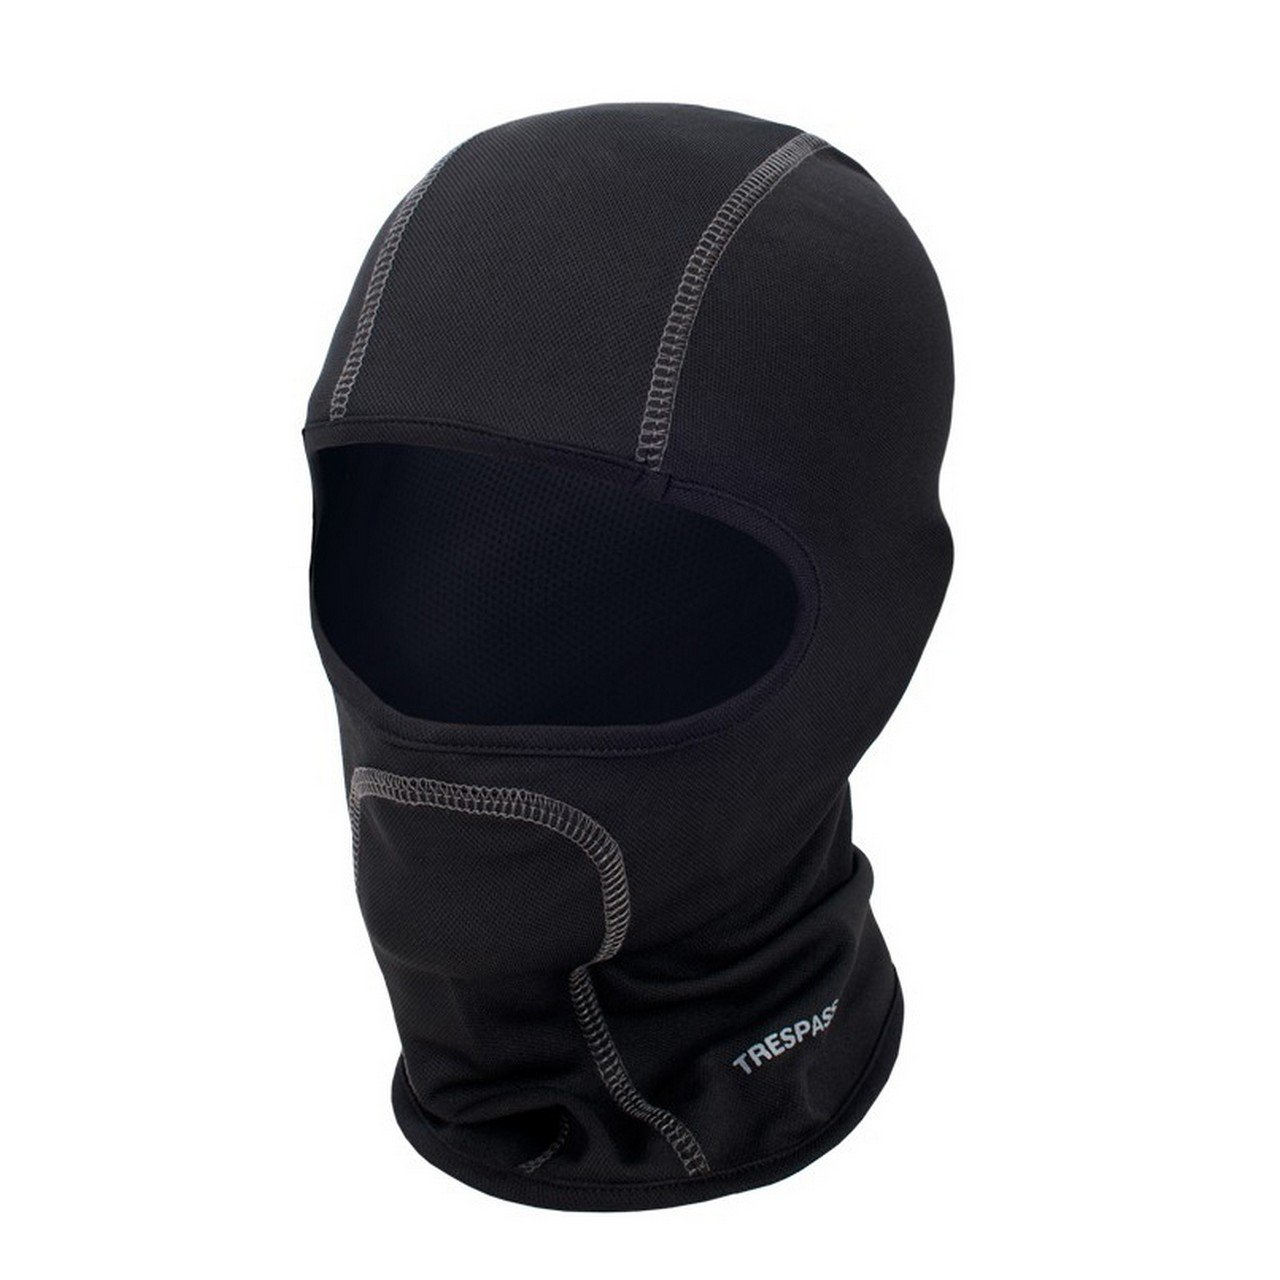 Trespass Kids Unisex Moulder Winter Balaclava (One Size) (Black) UTTP998_1